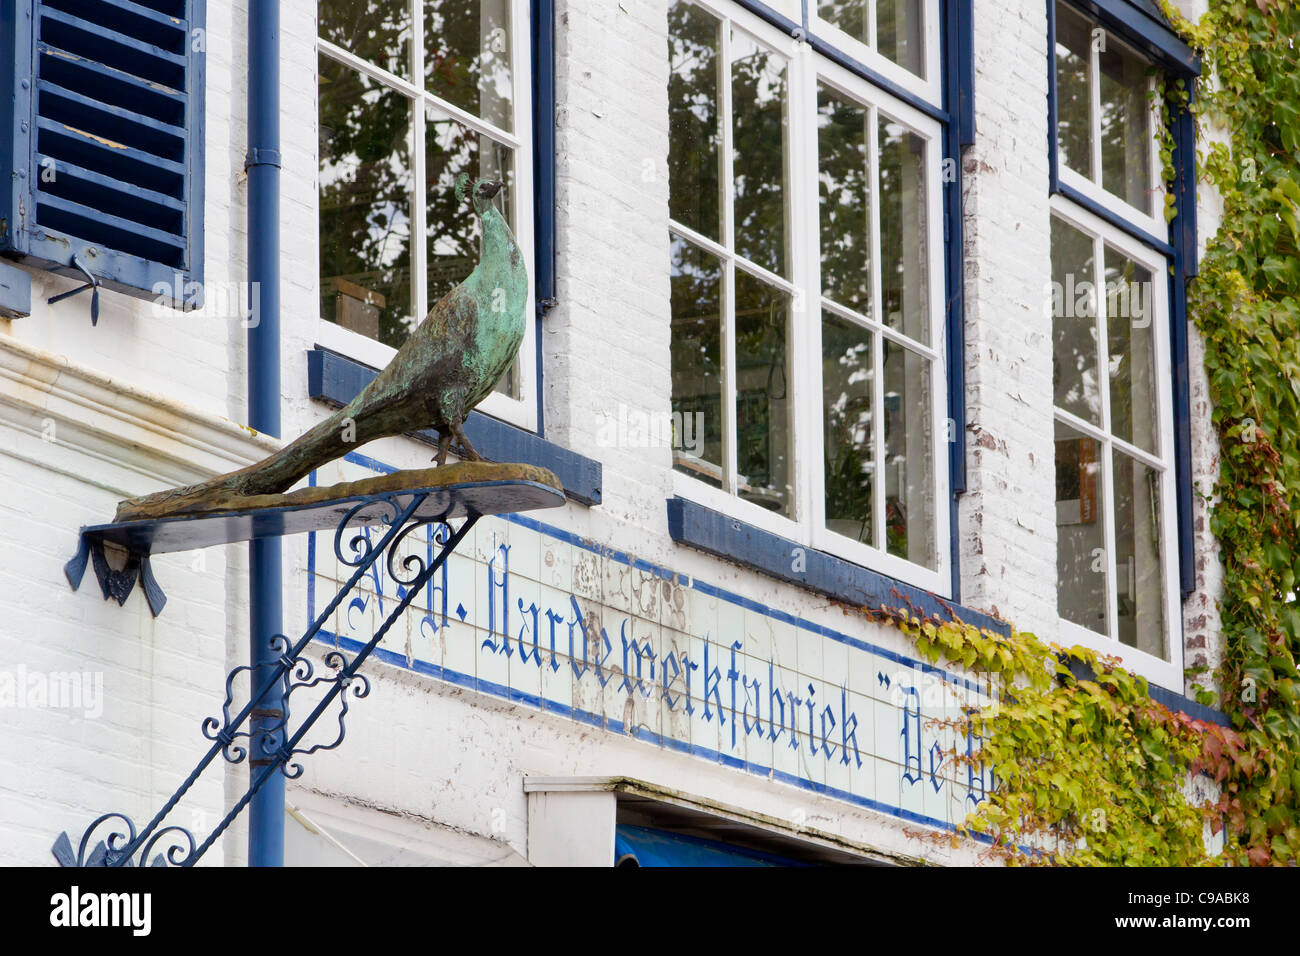 Pottery Delftse Pauw, one of the manufacturers of traditional Delft pottery, The Netherlands - Stock Image